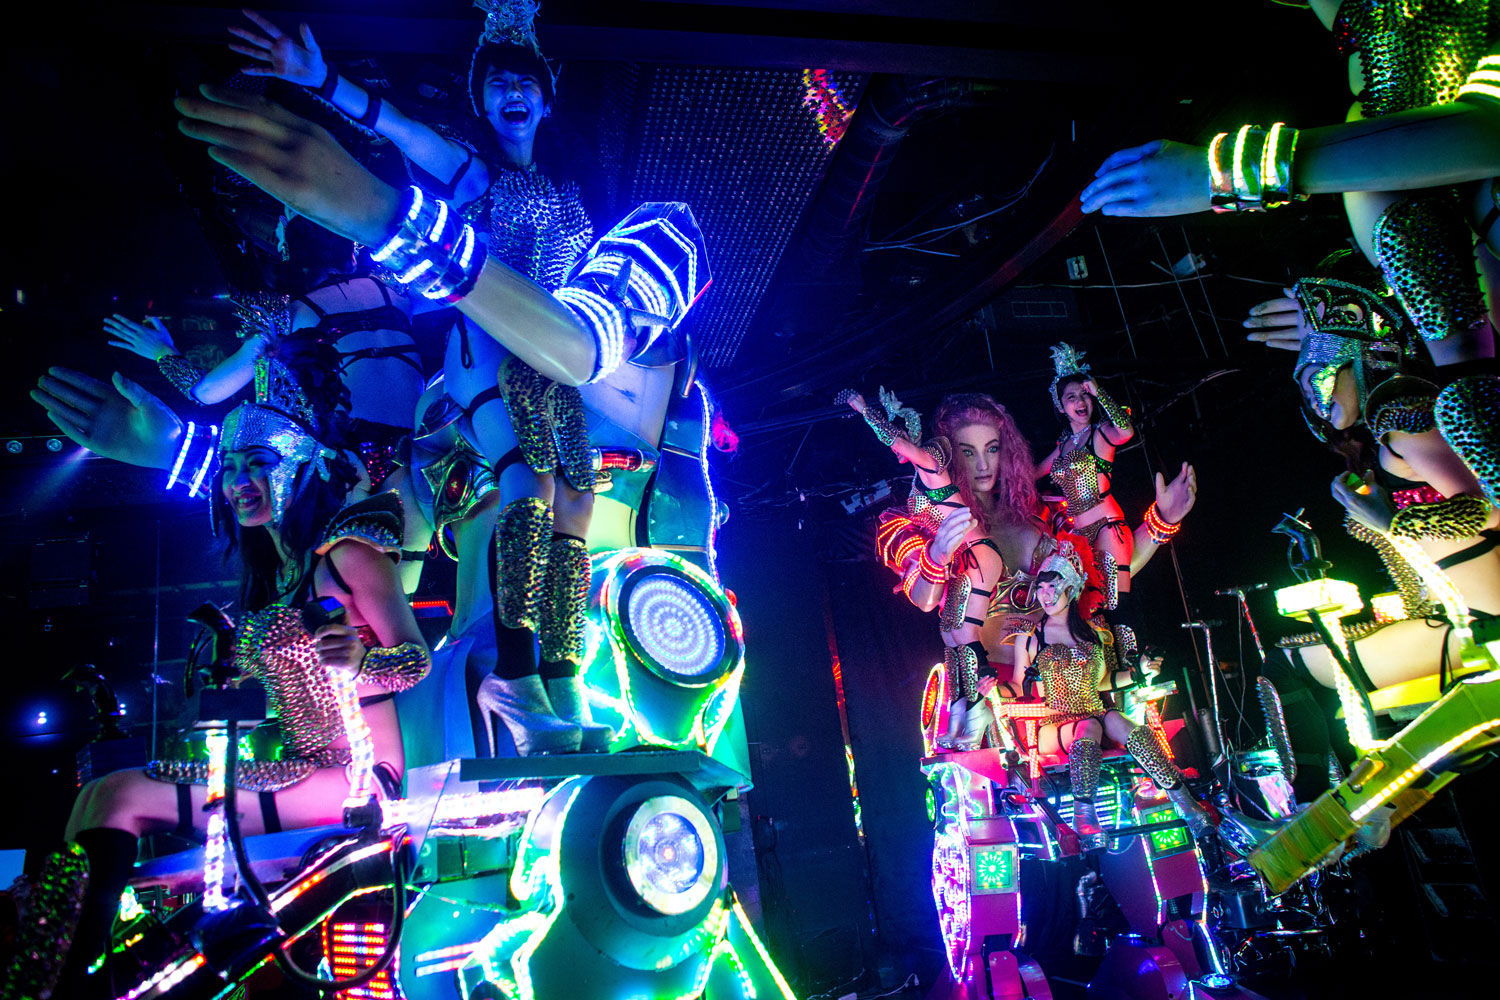 Dancers perform on large scale female robots during a show at The Robot Restaurant on June 29, 2014 in Tokyo.